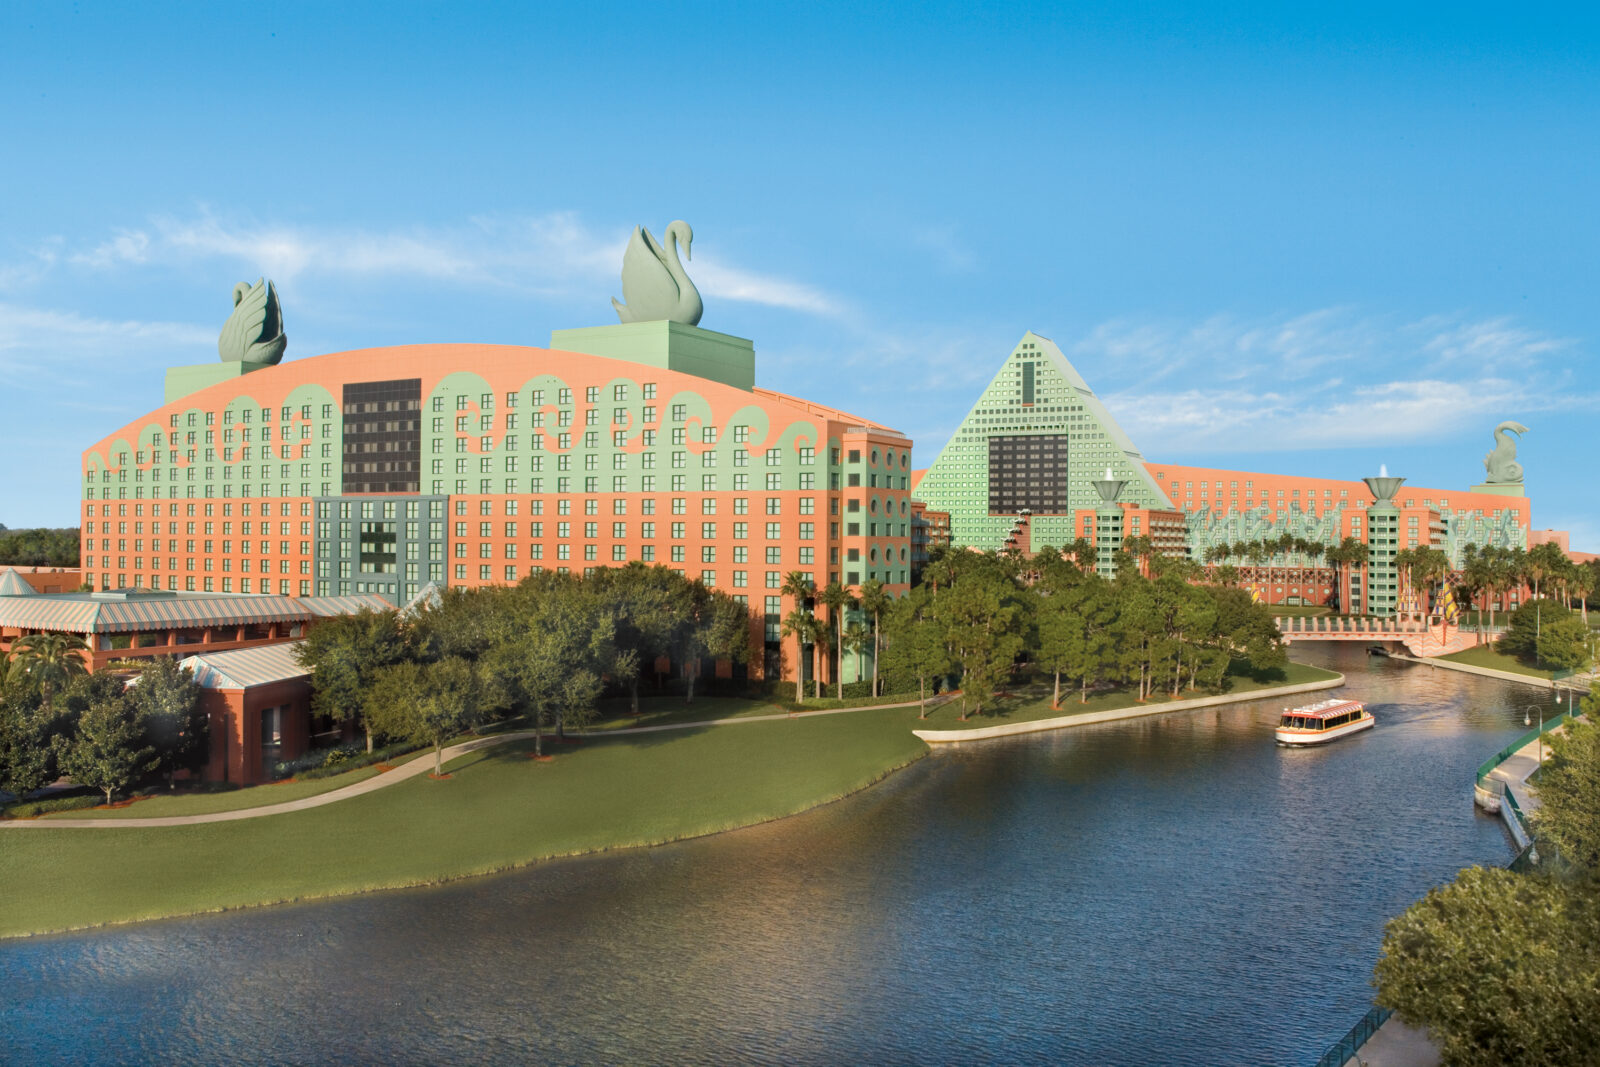 Sip, Savor and Stay Saturdays Walt Disney World Swan and Dolphin Hotel Fall 2020 September 2020 October 2020